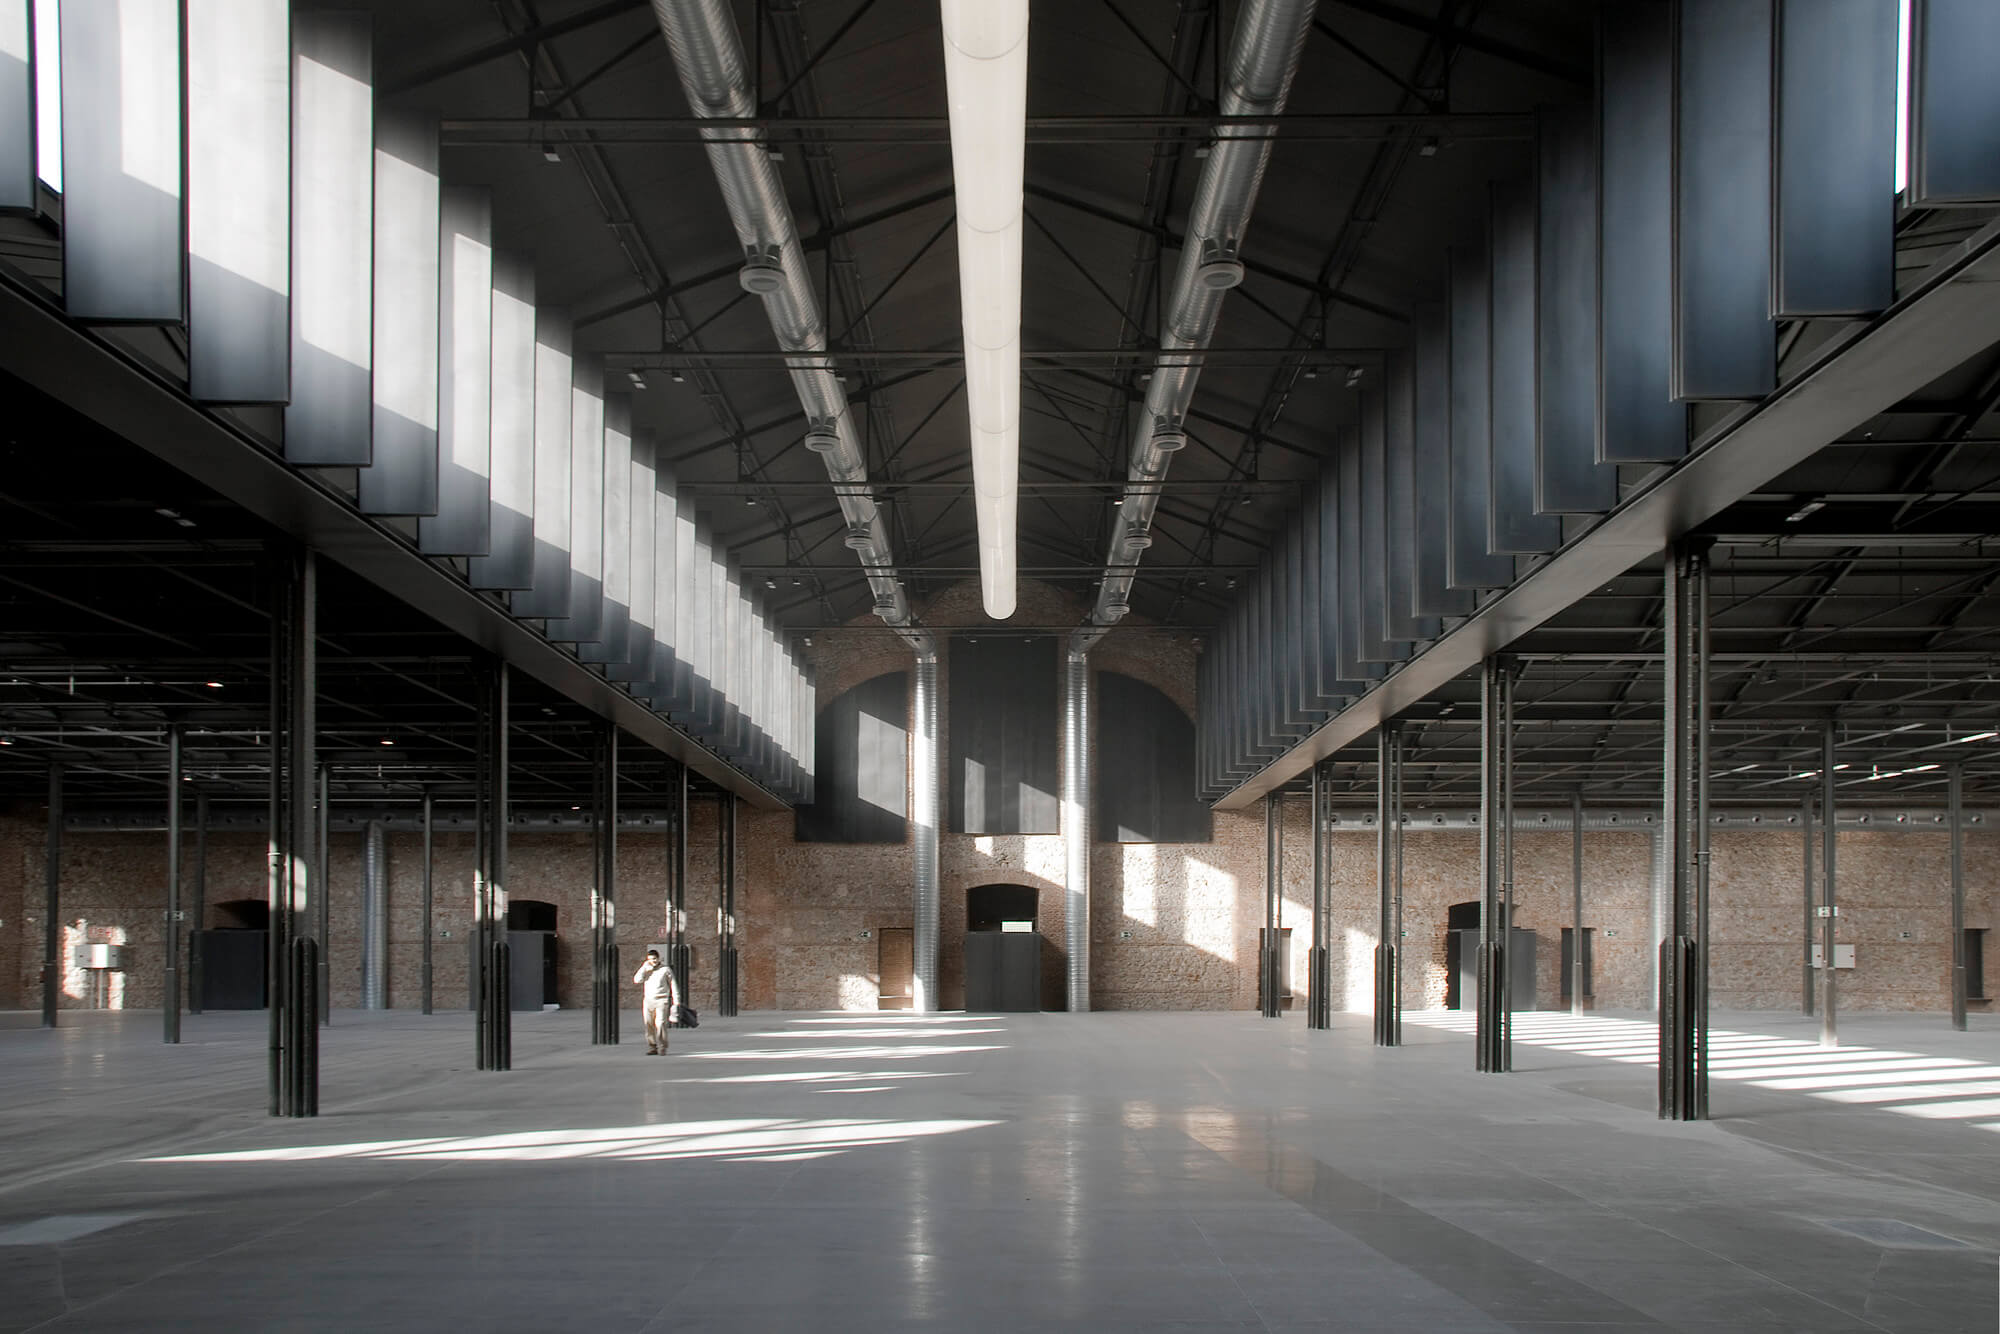 Hangar 16 offers space for a variety of cultural and creative activities, such as exhibitions that utilise defunct carcass-hanging hooks to display delicate pieces of art.